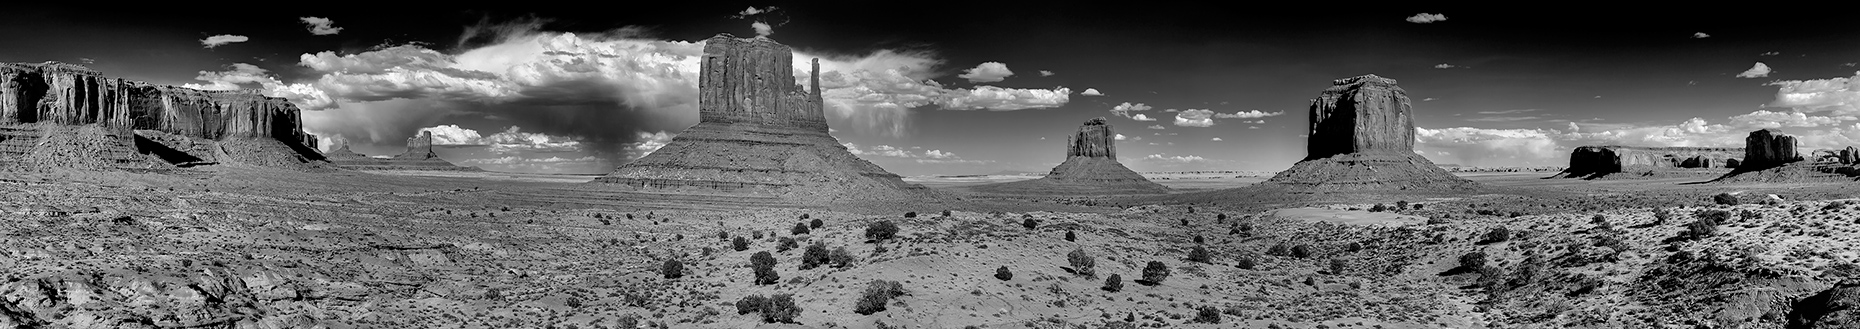 Monument_Valley_165.jpg